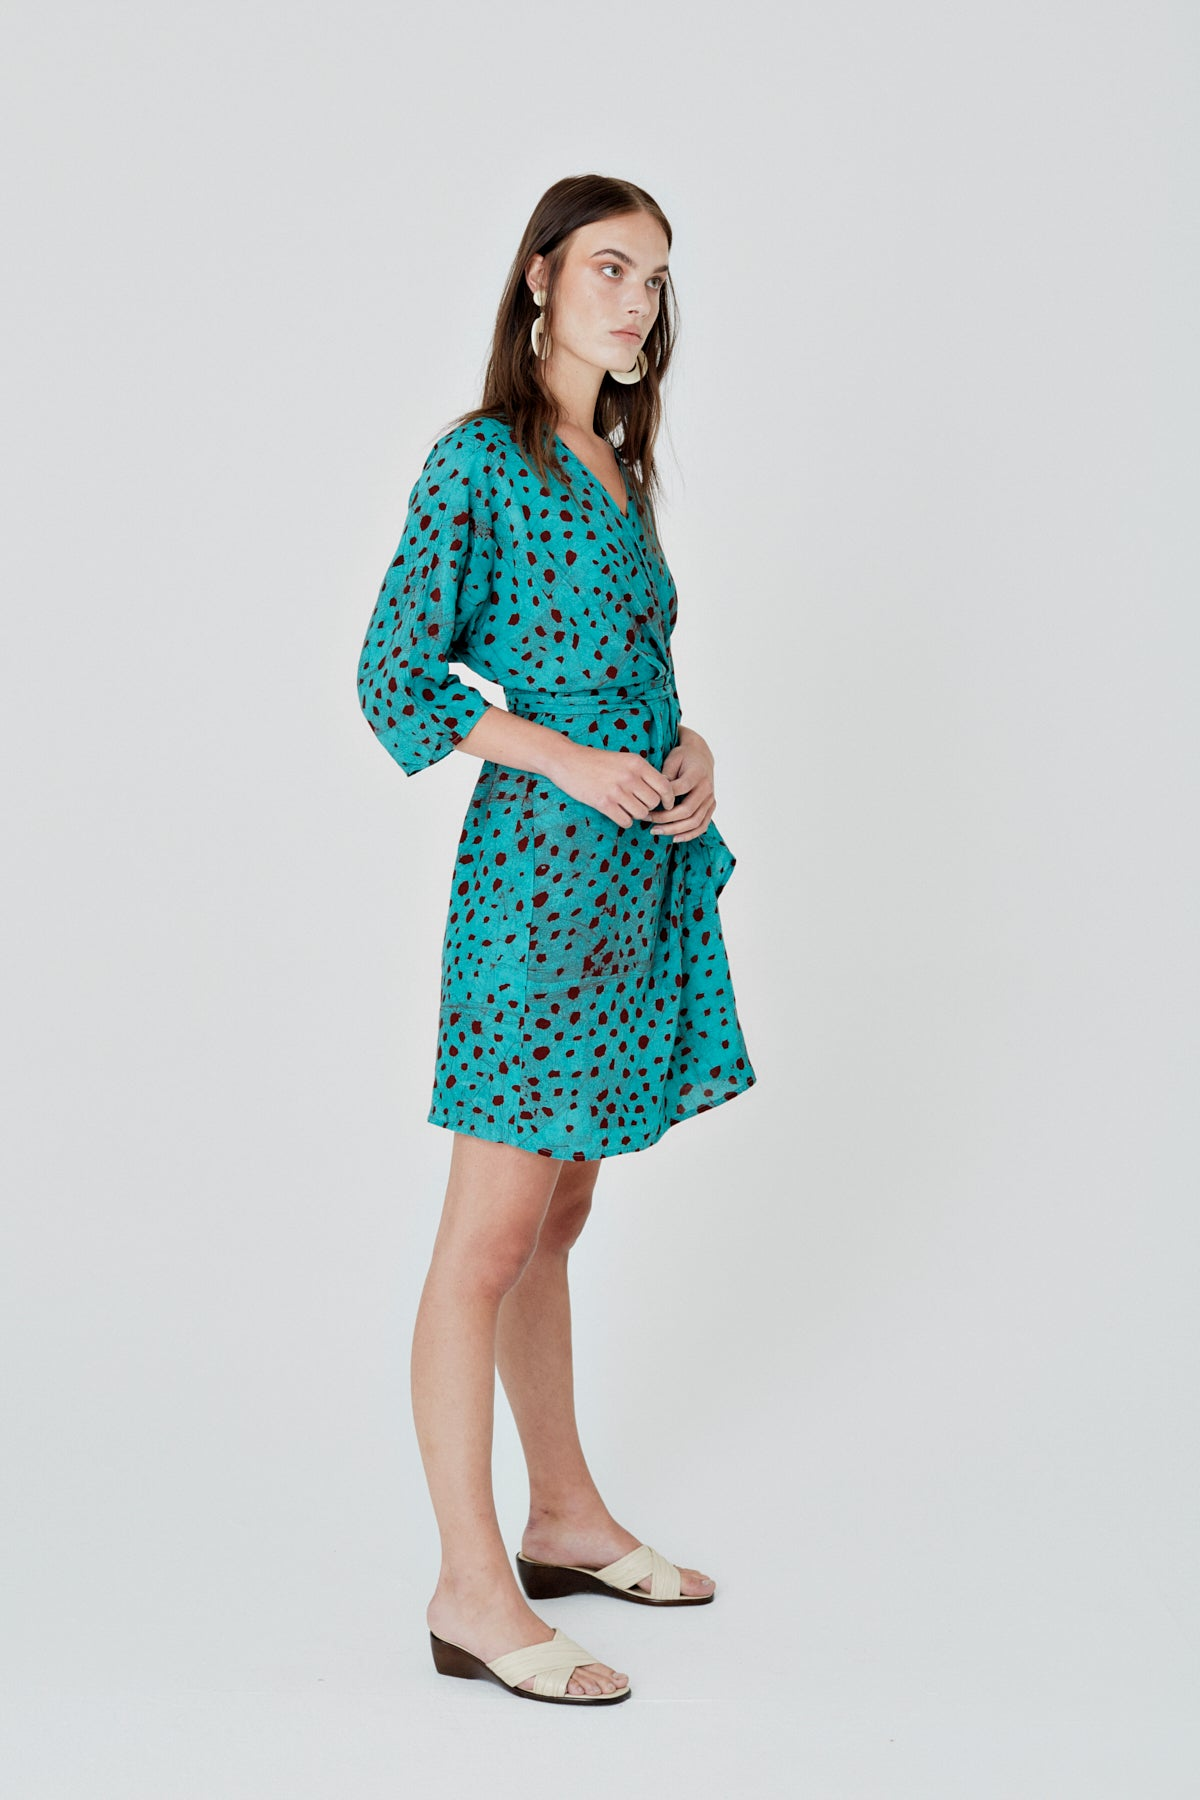 Shaya Dress in Baby Giraffe